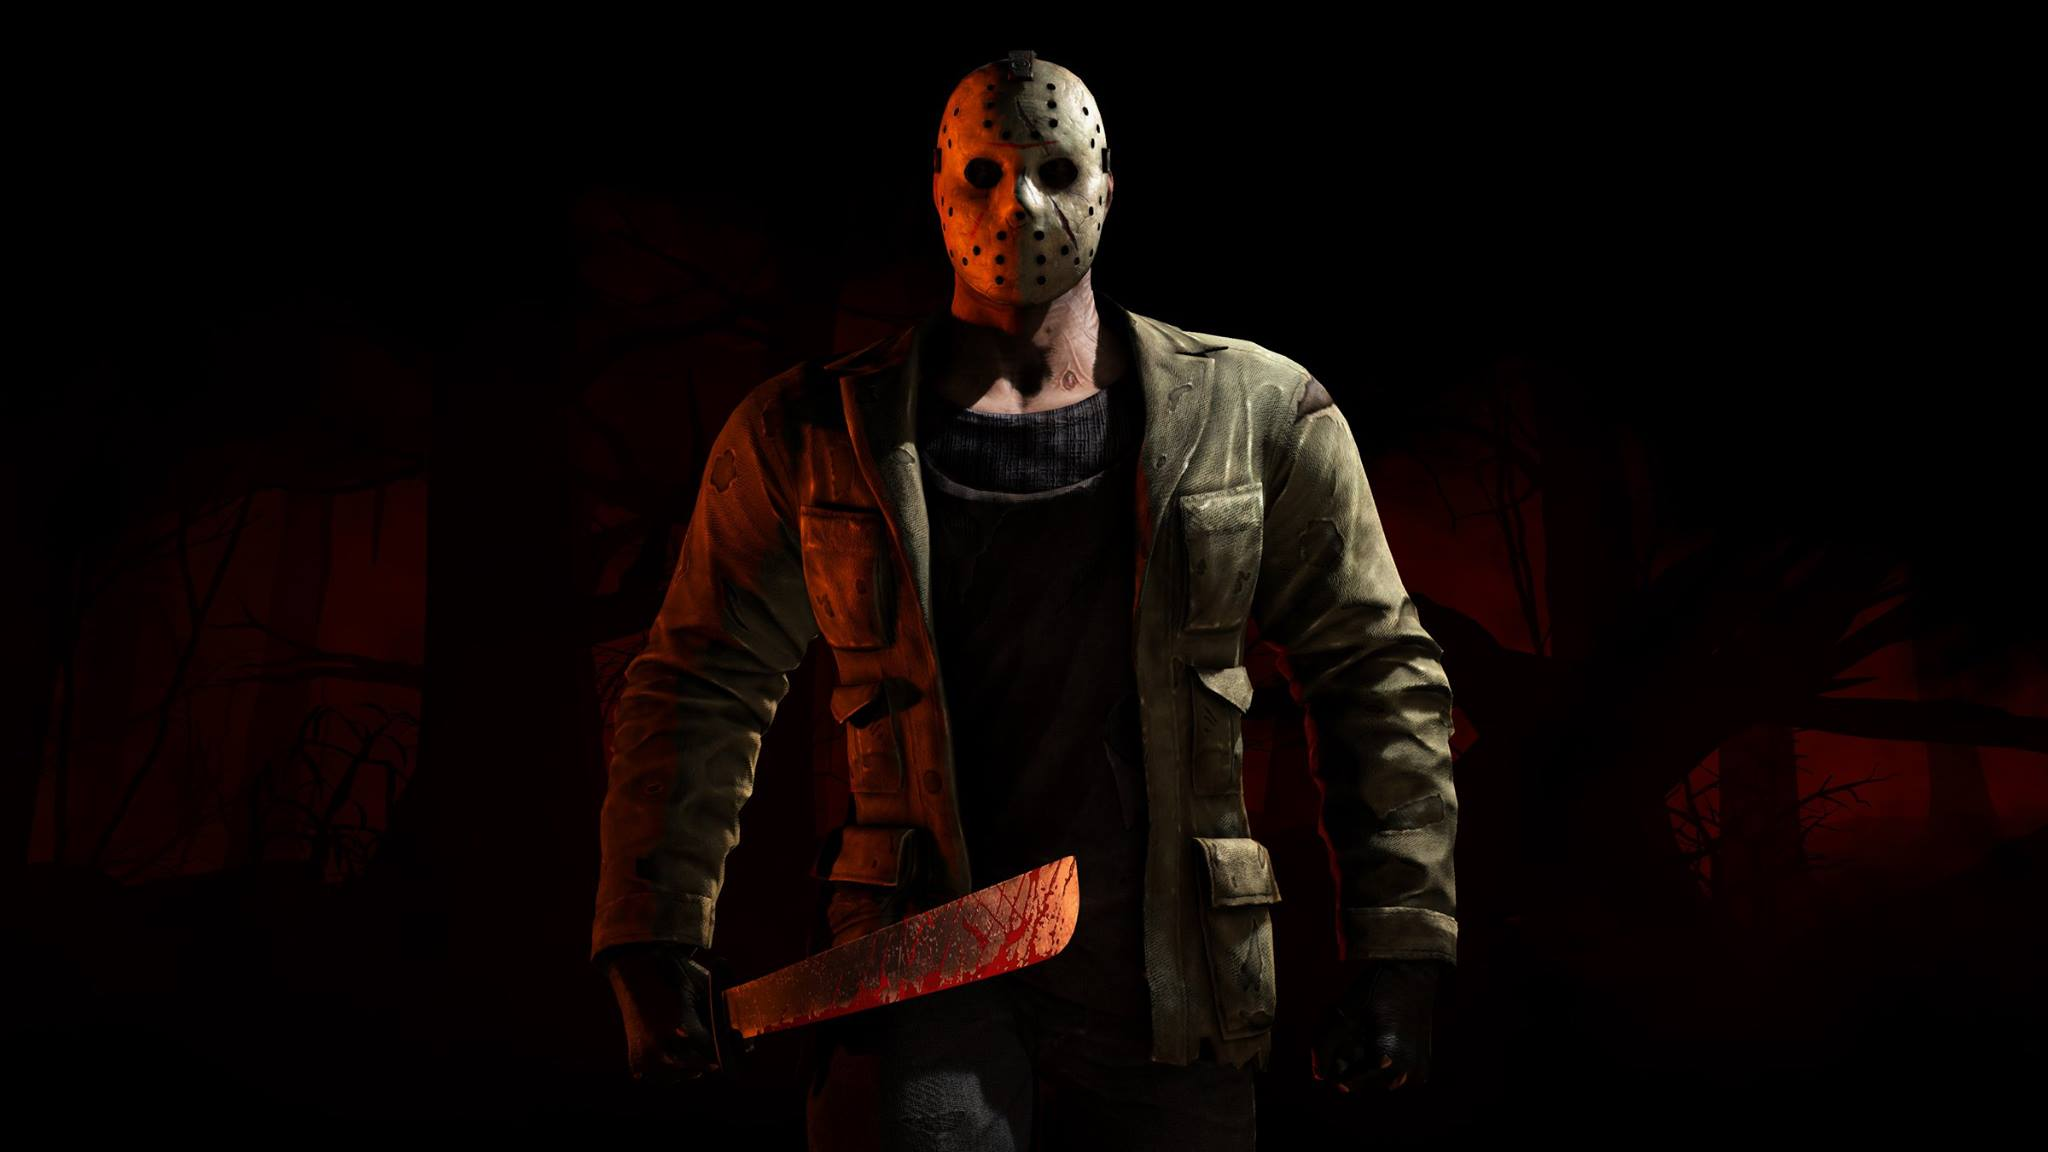 Jason Voorhees to appear in Mortal Kombat X